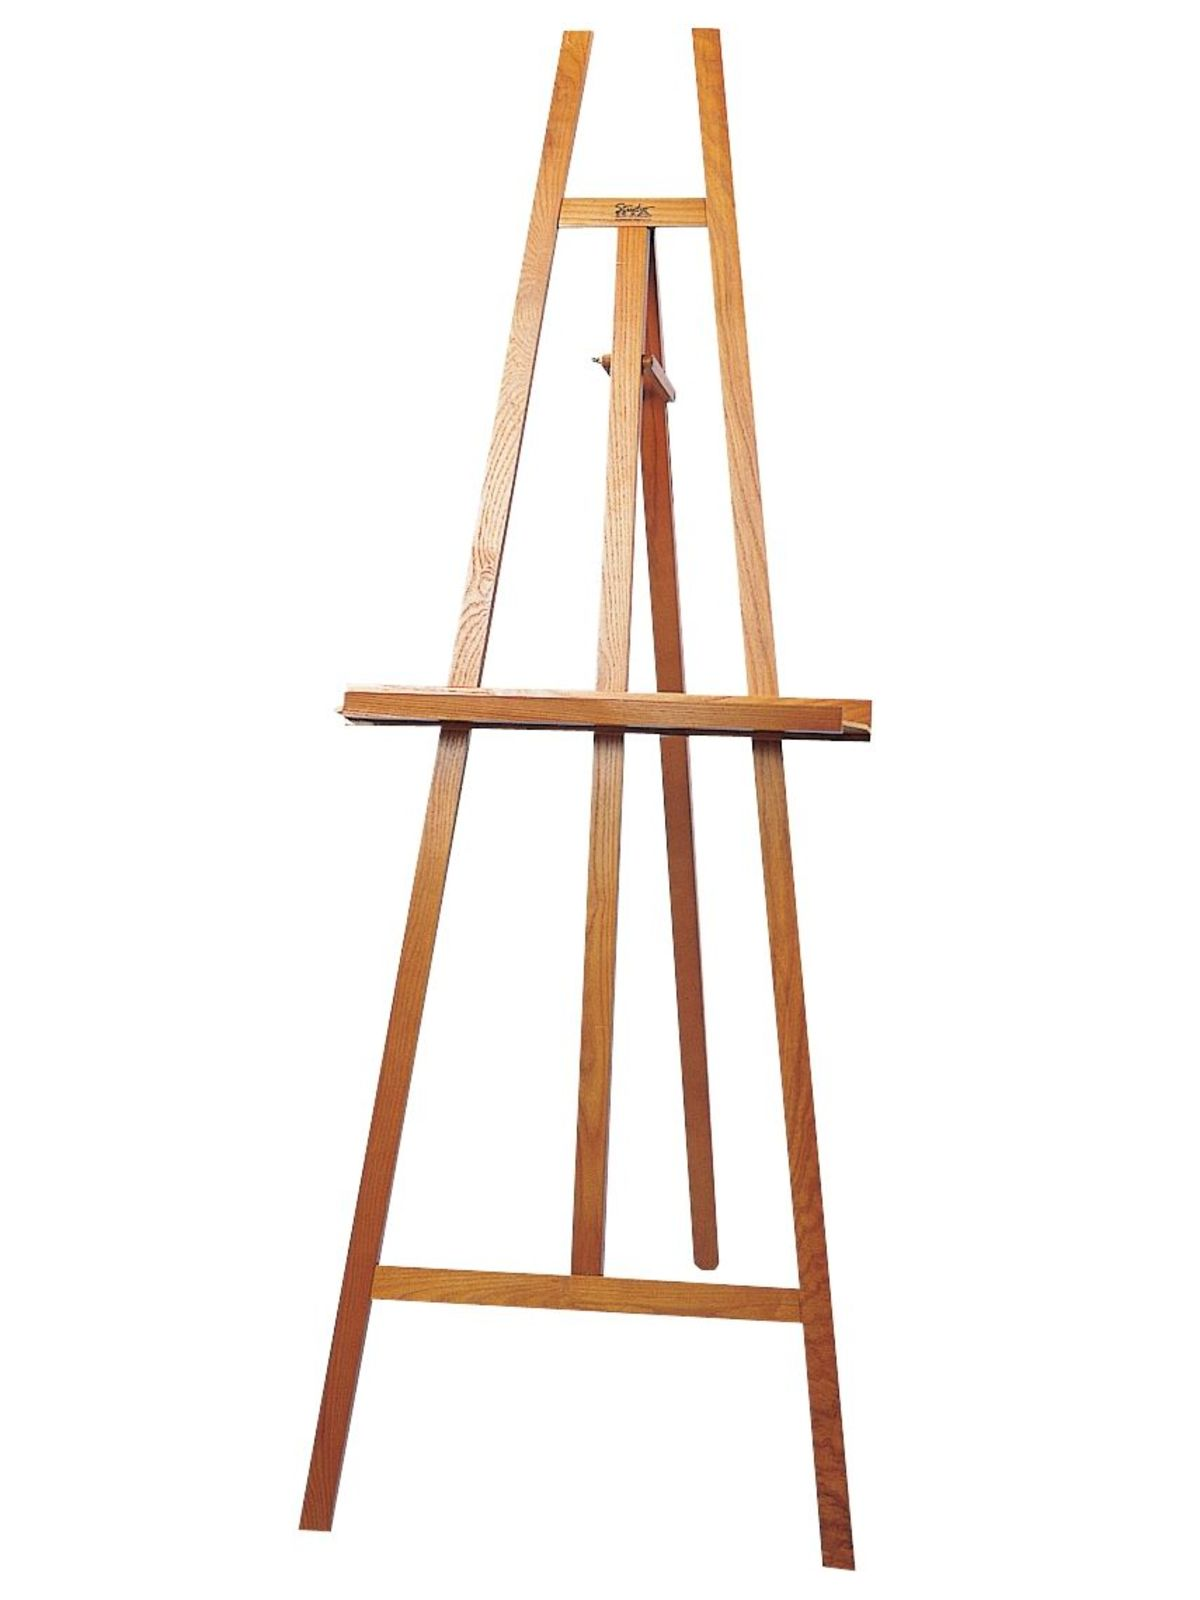 studio designs museum wooden easel